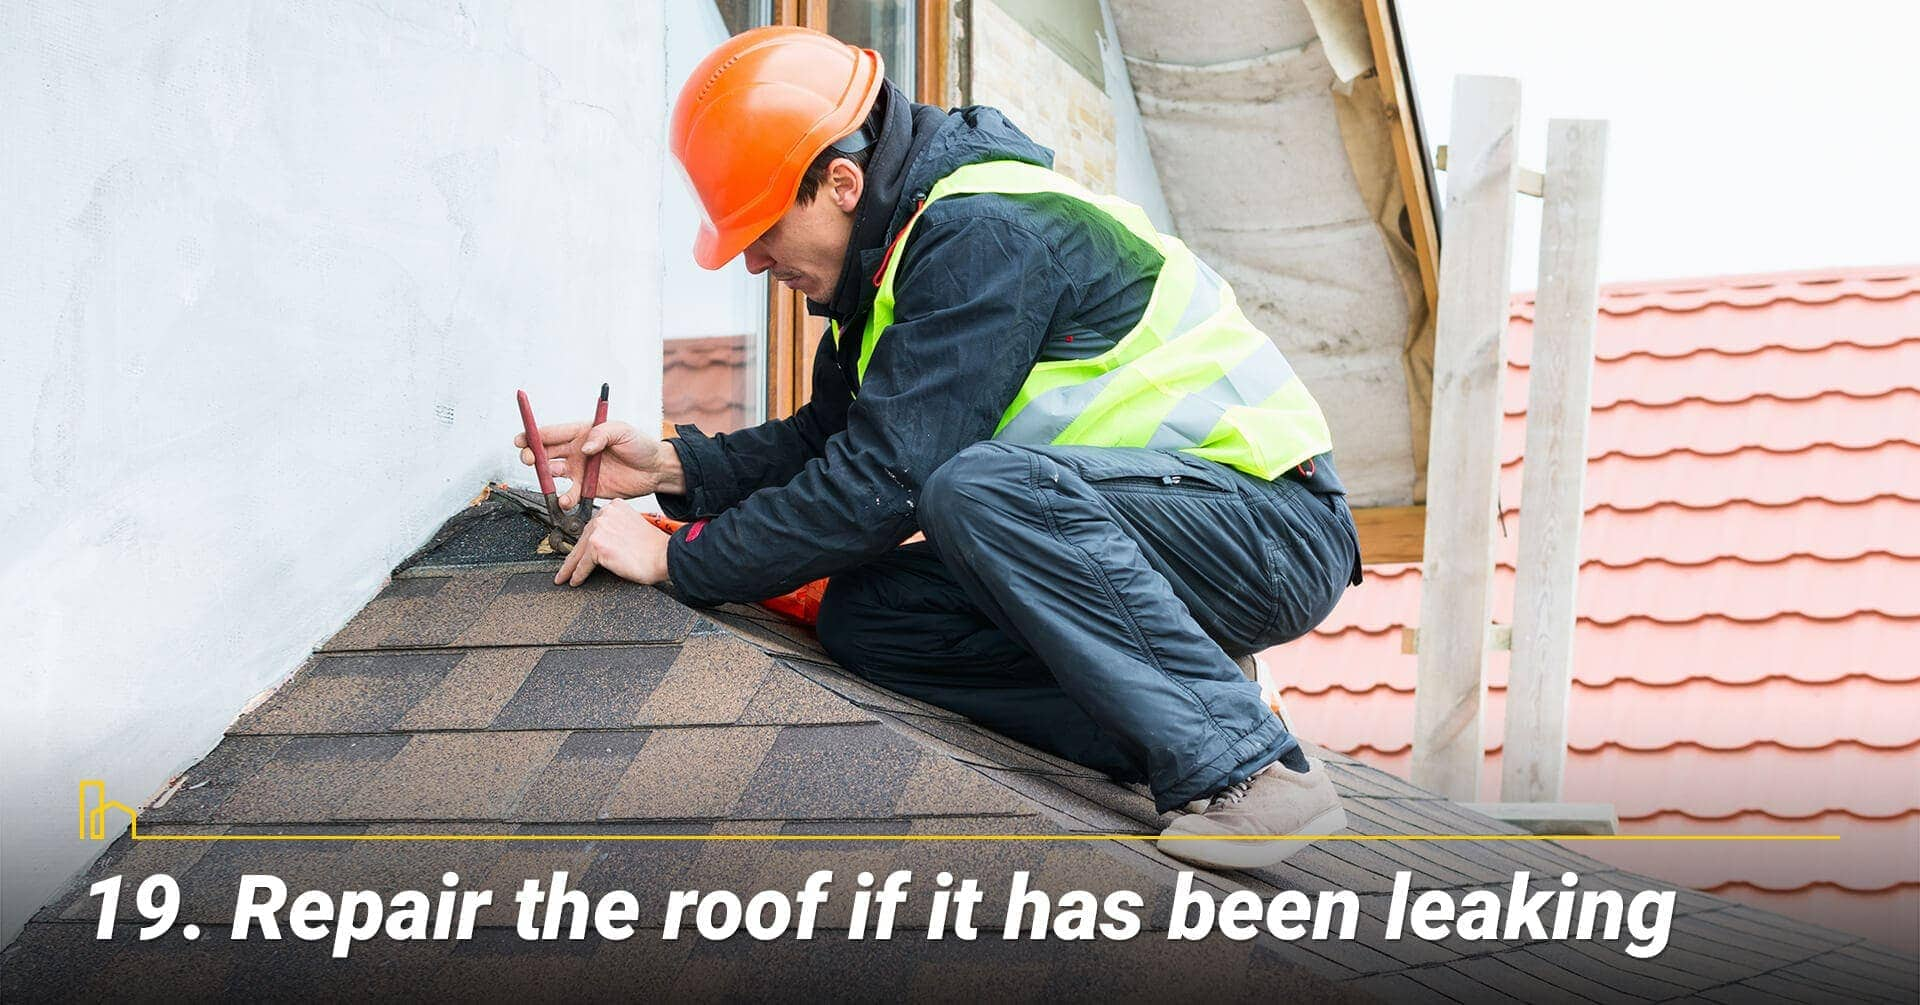 Repair the roof if it has been leaking, waterproof the roof